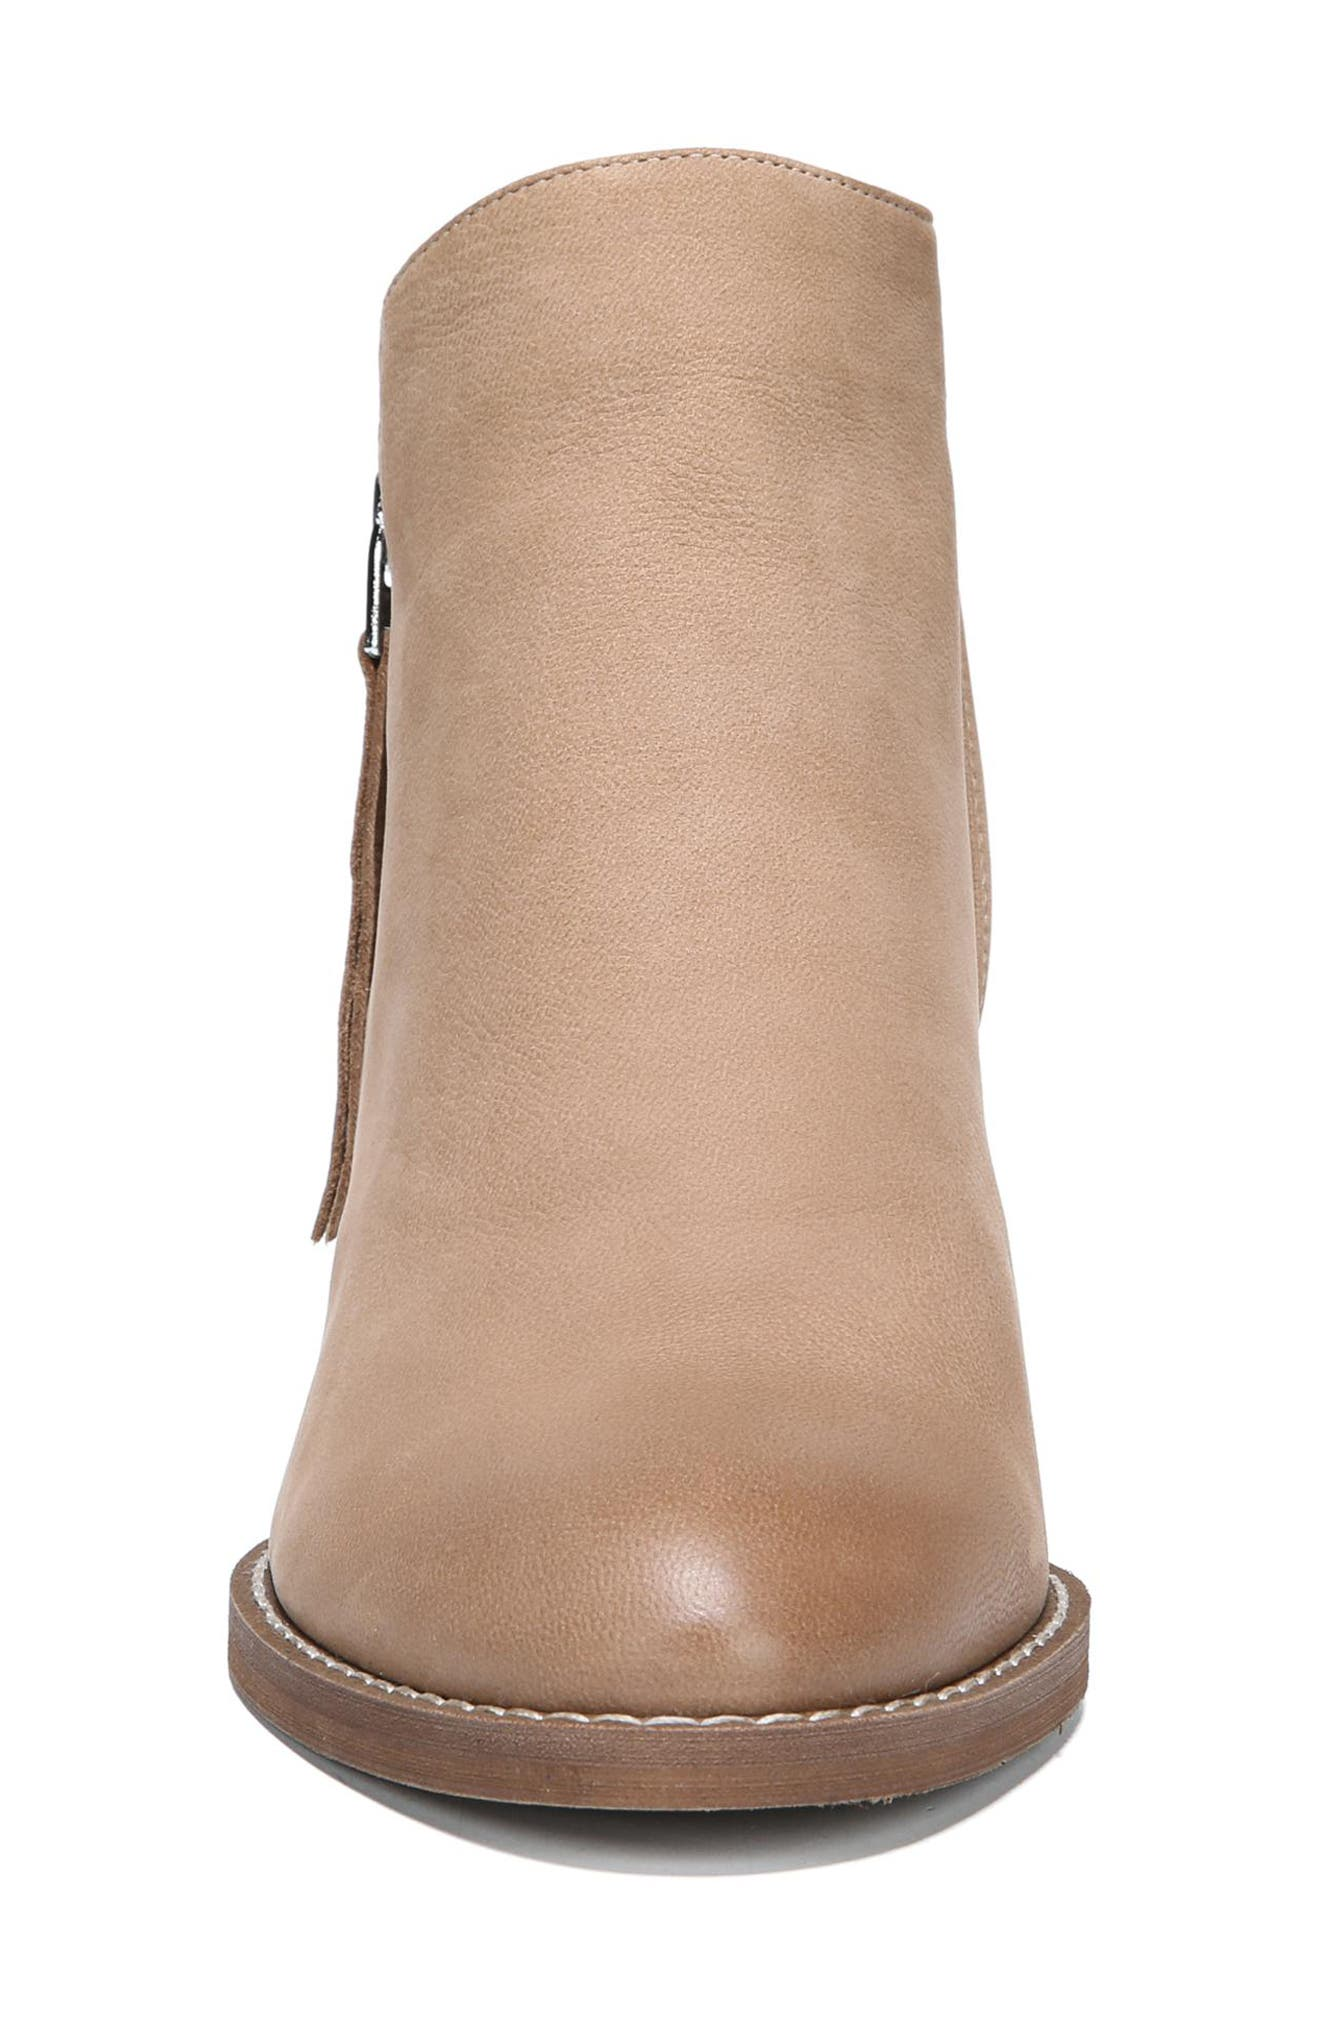 Macon Bootie,                             Alternate thumbnail 4, color,                             Golden Caramel Nubuck Leather